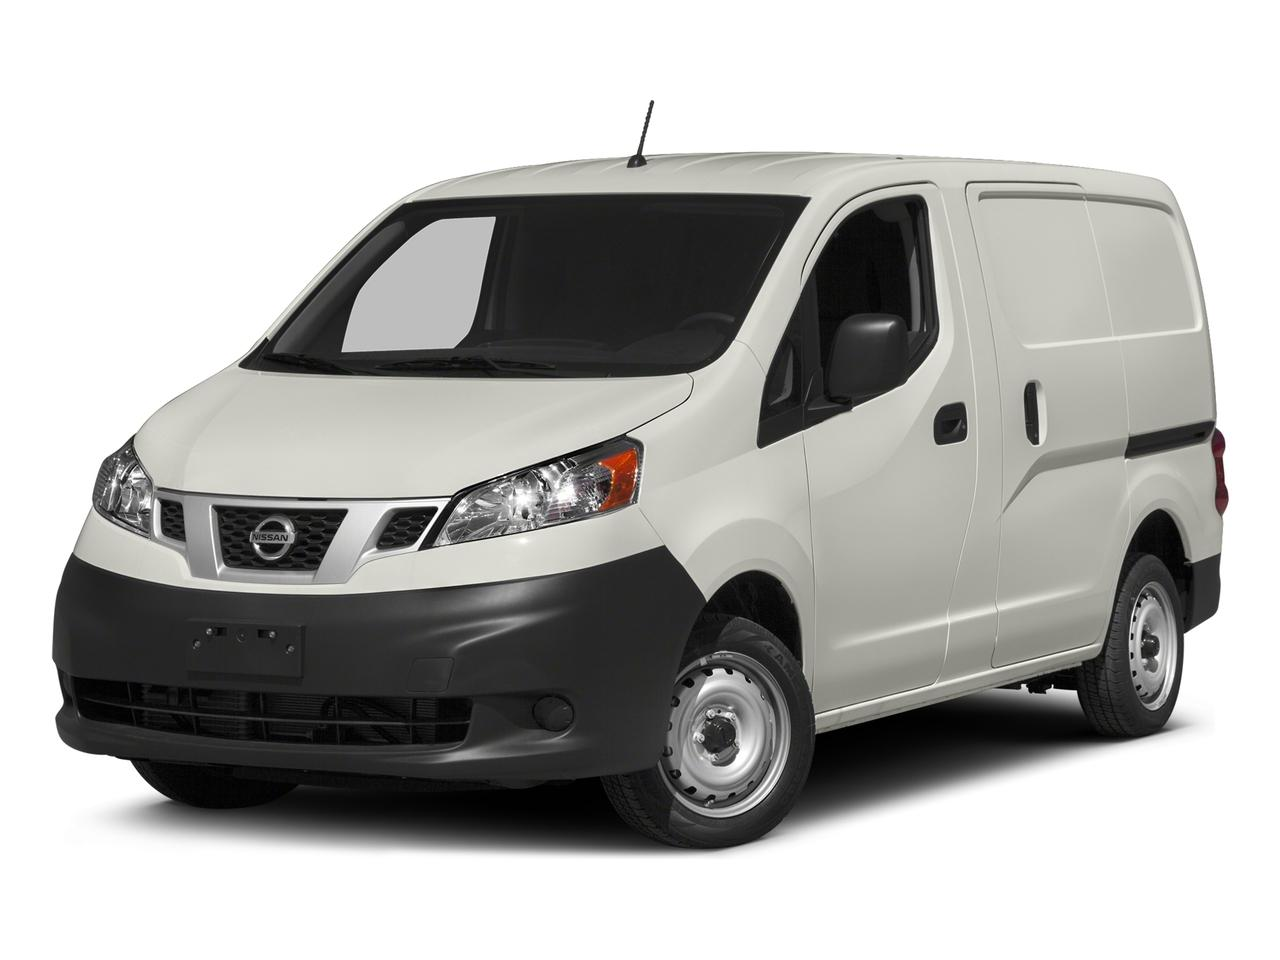 2017 Nissan NV200 Compact Cargo Vehicle Photo in North Charleston, SC 29406